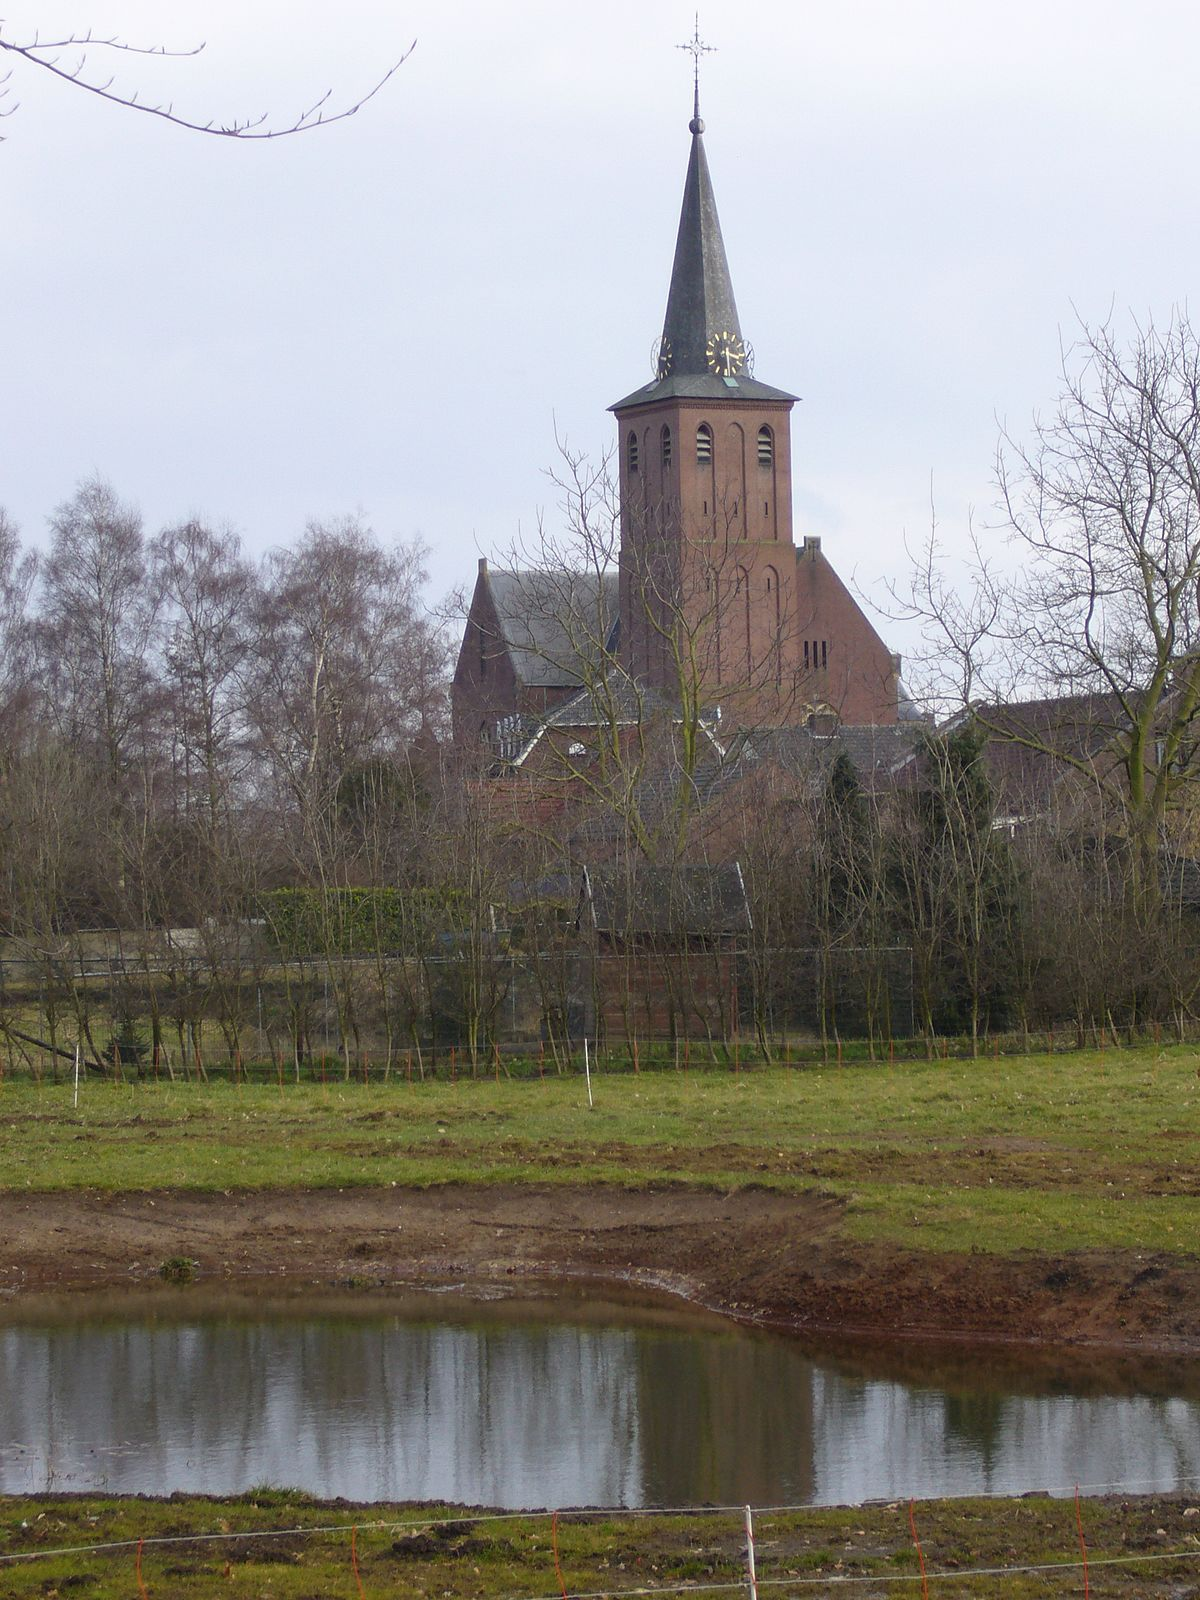 https://upload.wikimedia.org/wikipedia/commons/thumb/8/80/Kerk_Meerlo.JPG/1200px-Kerk_Meerlo.JPG